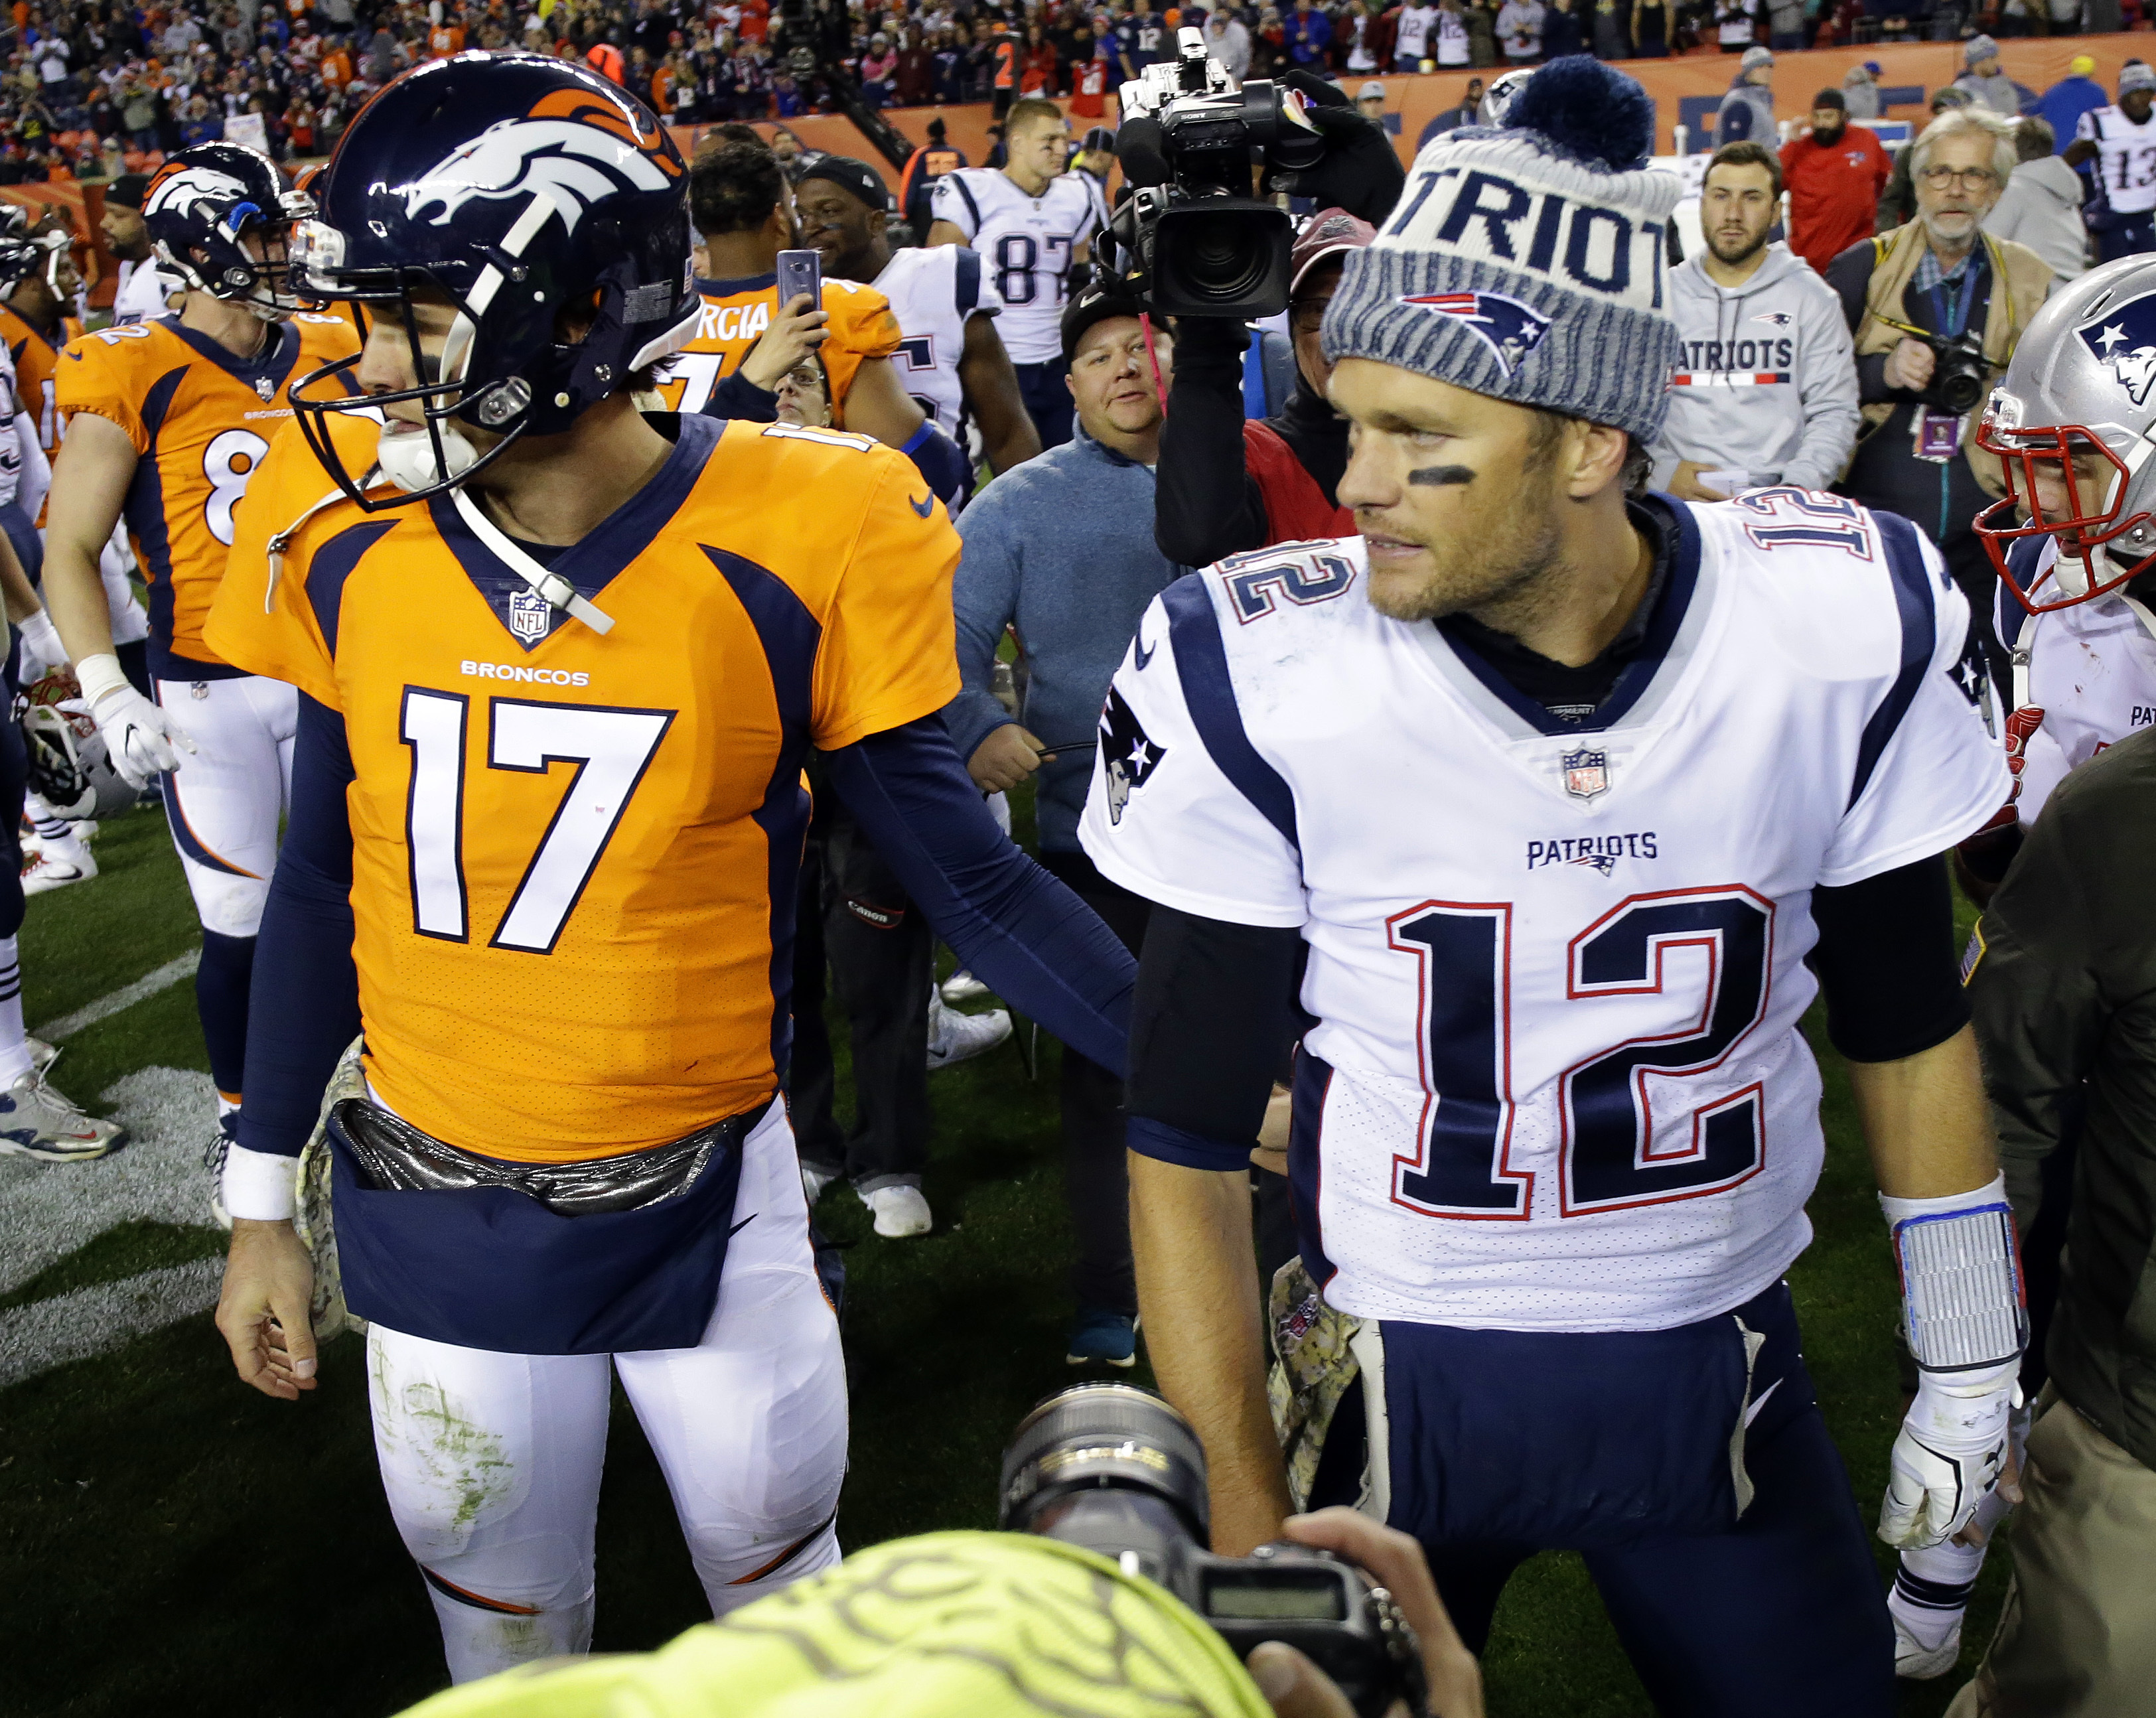 Brock Osweiler back up to full speed